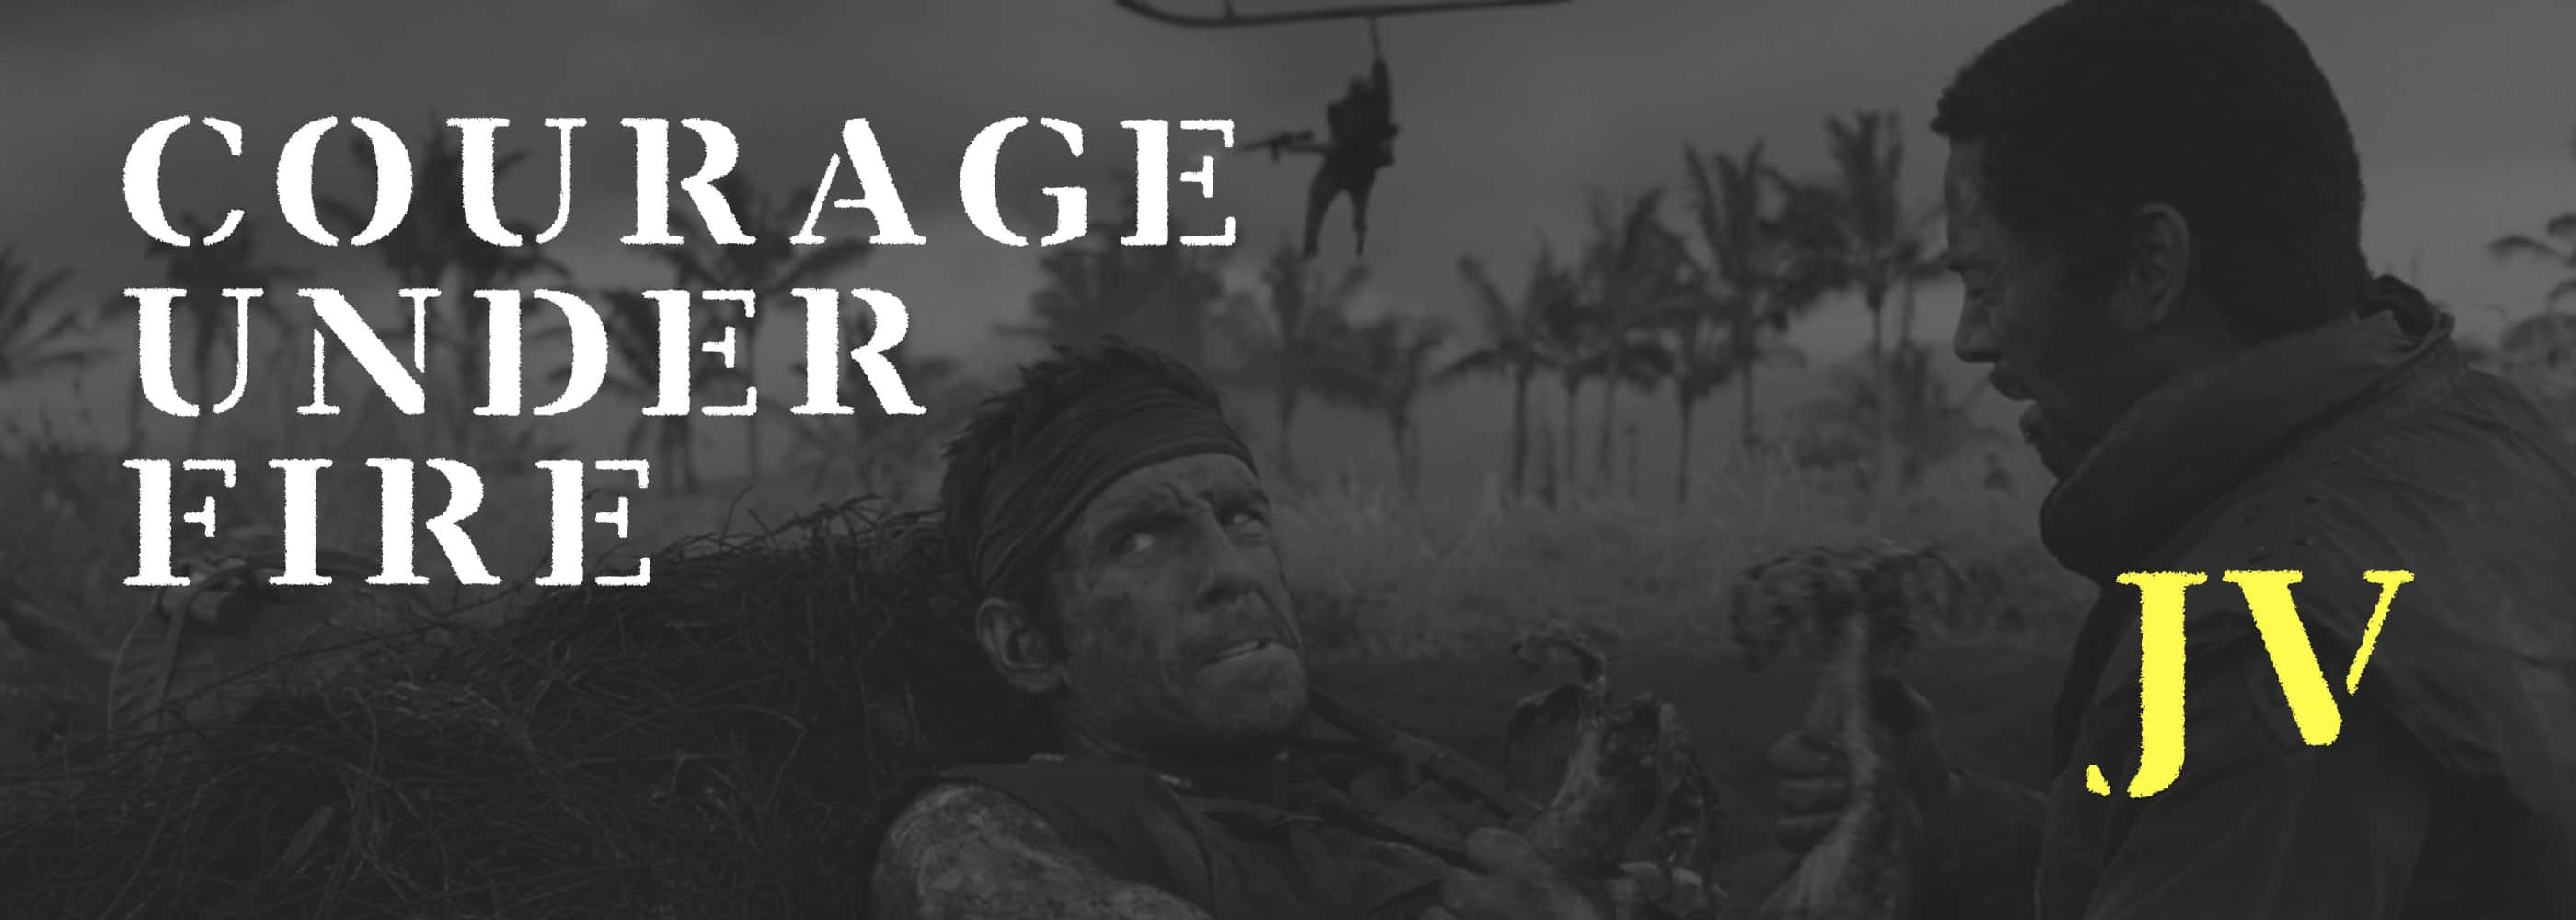 courage under fire Find great deals on ebay for courage under fire and courage under fire blu ray shop with confidence.